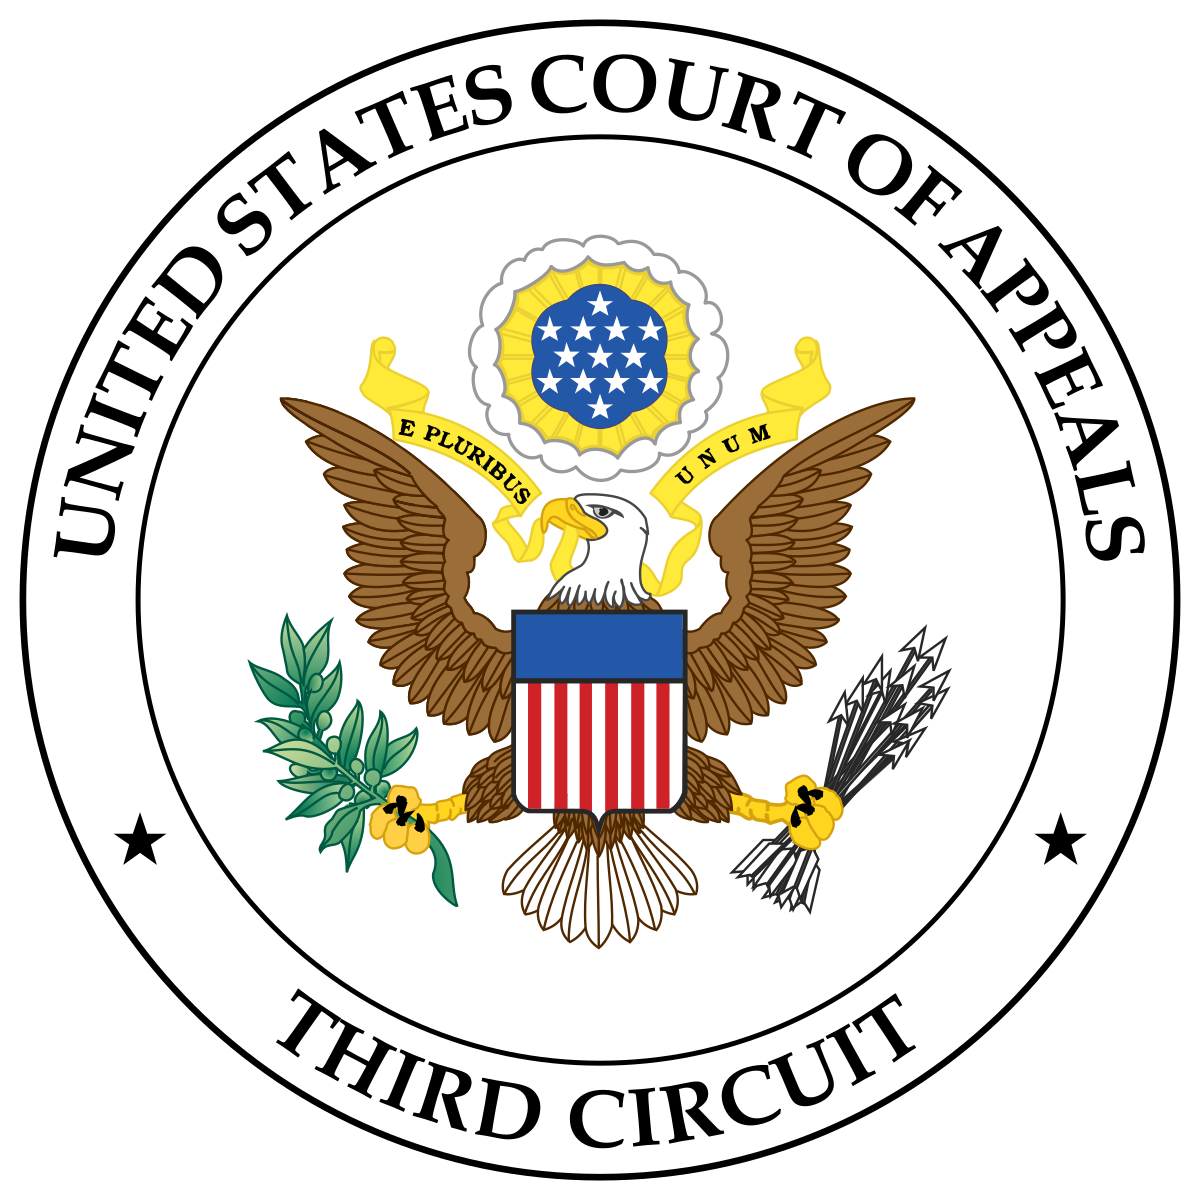 Seal_of_the_United_States_Court_of_Appeals_for_the_Third_Circuit_svg